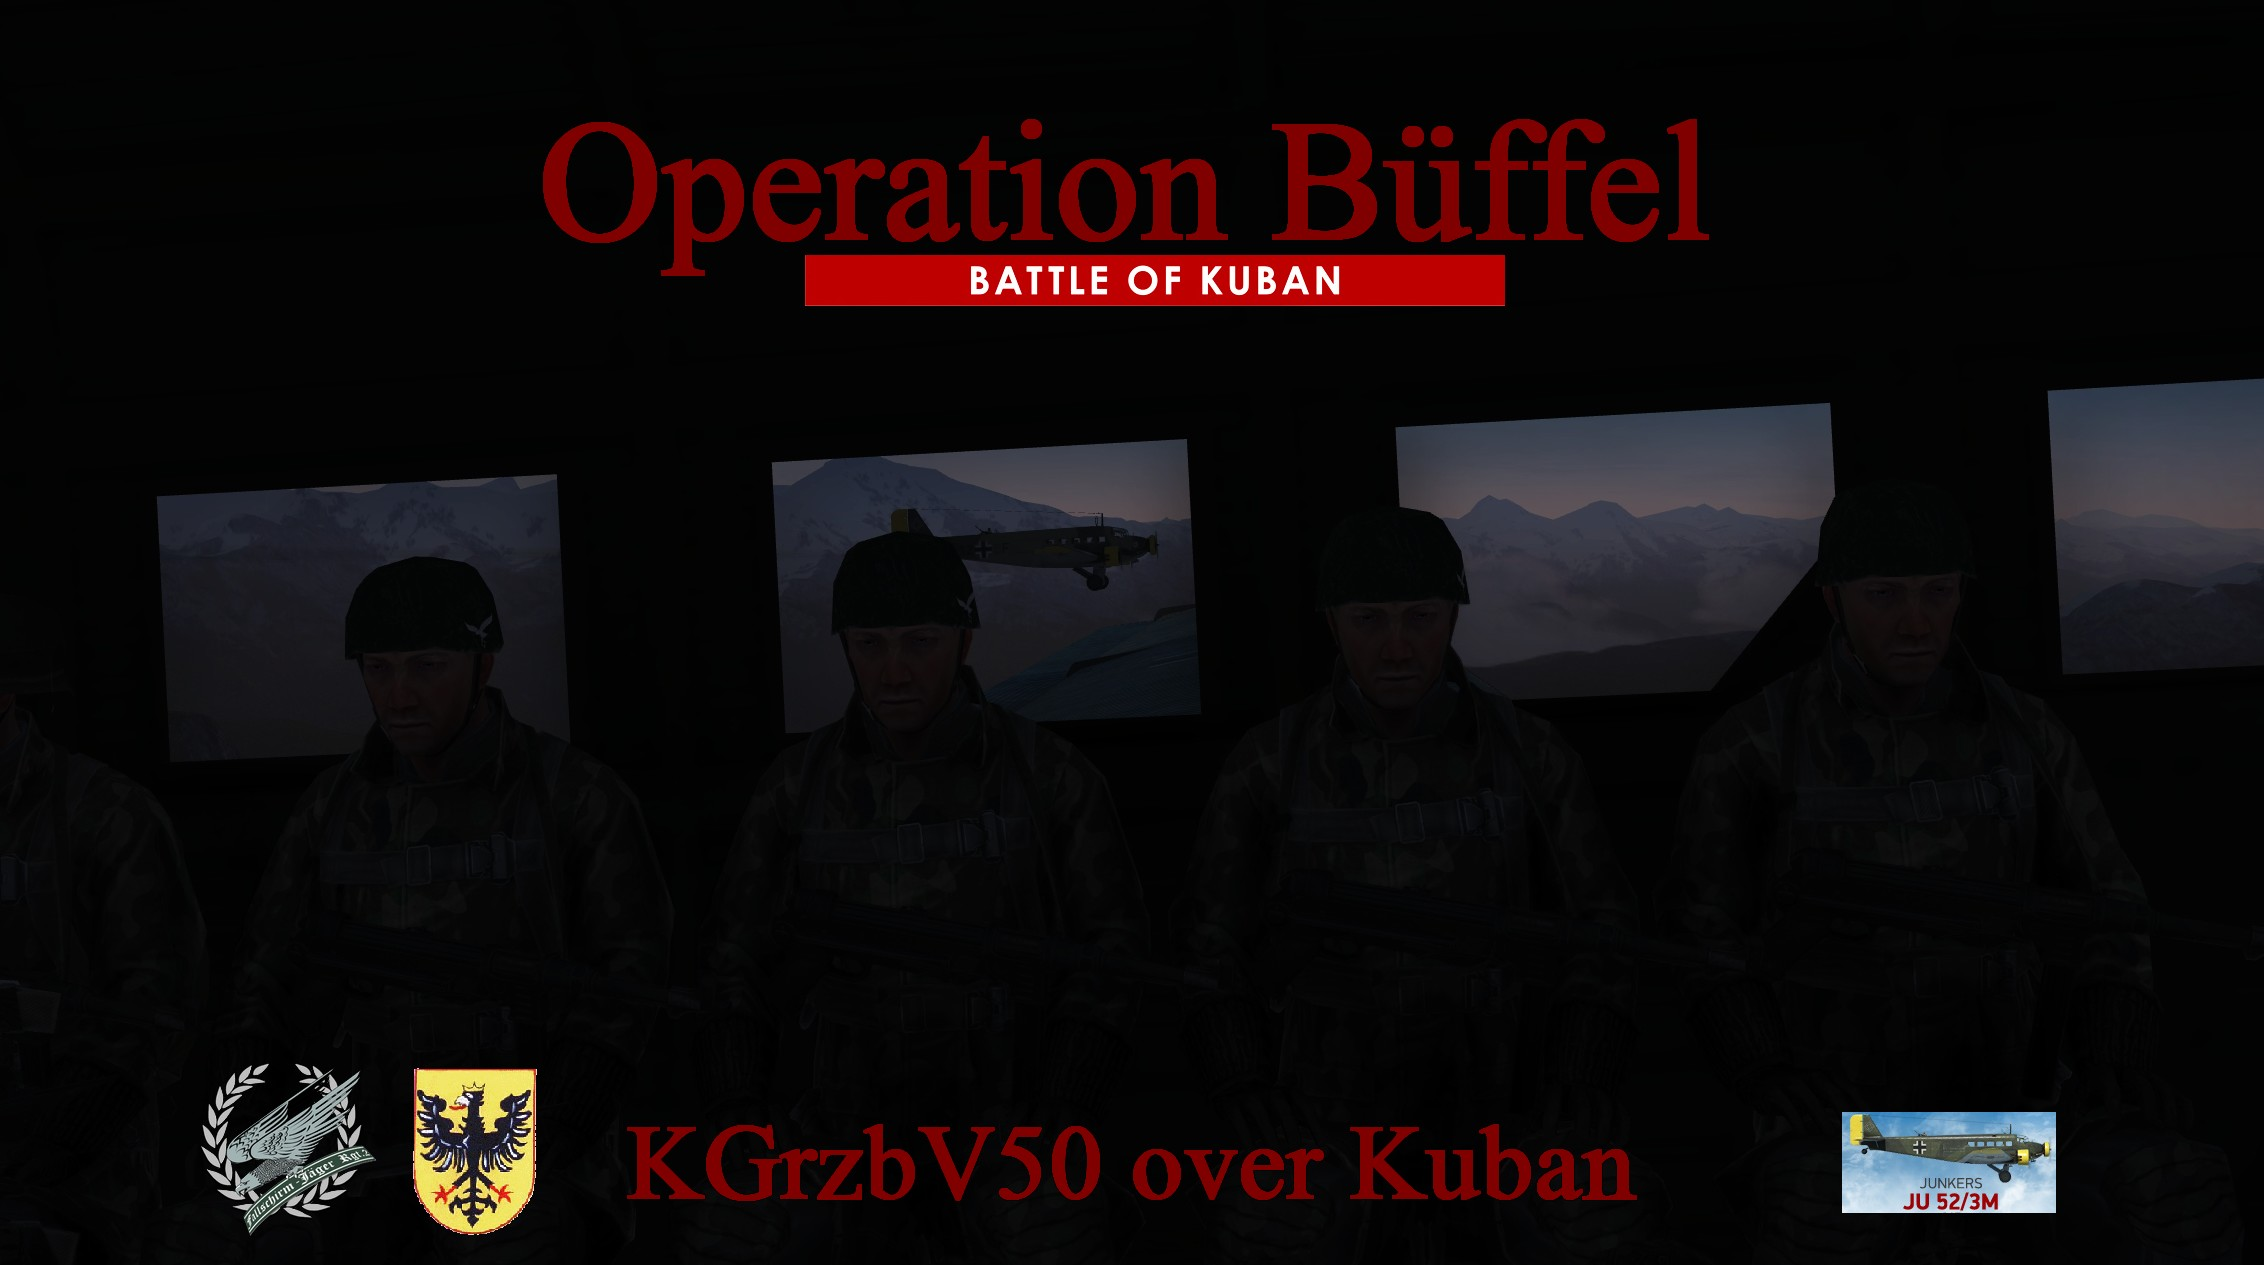 operationbuffel2.jpg